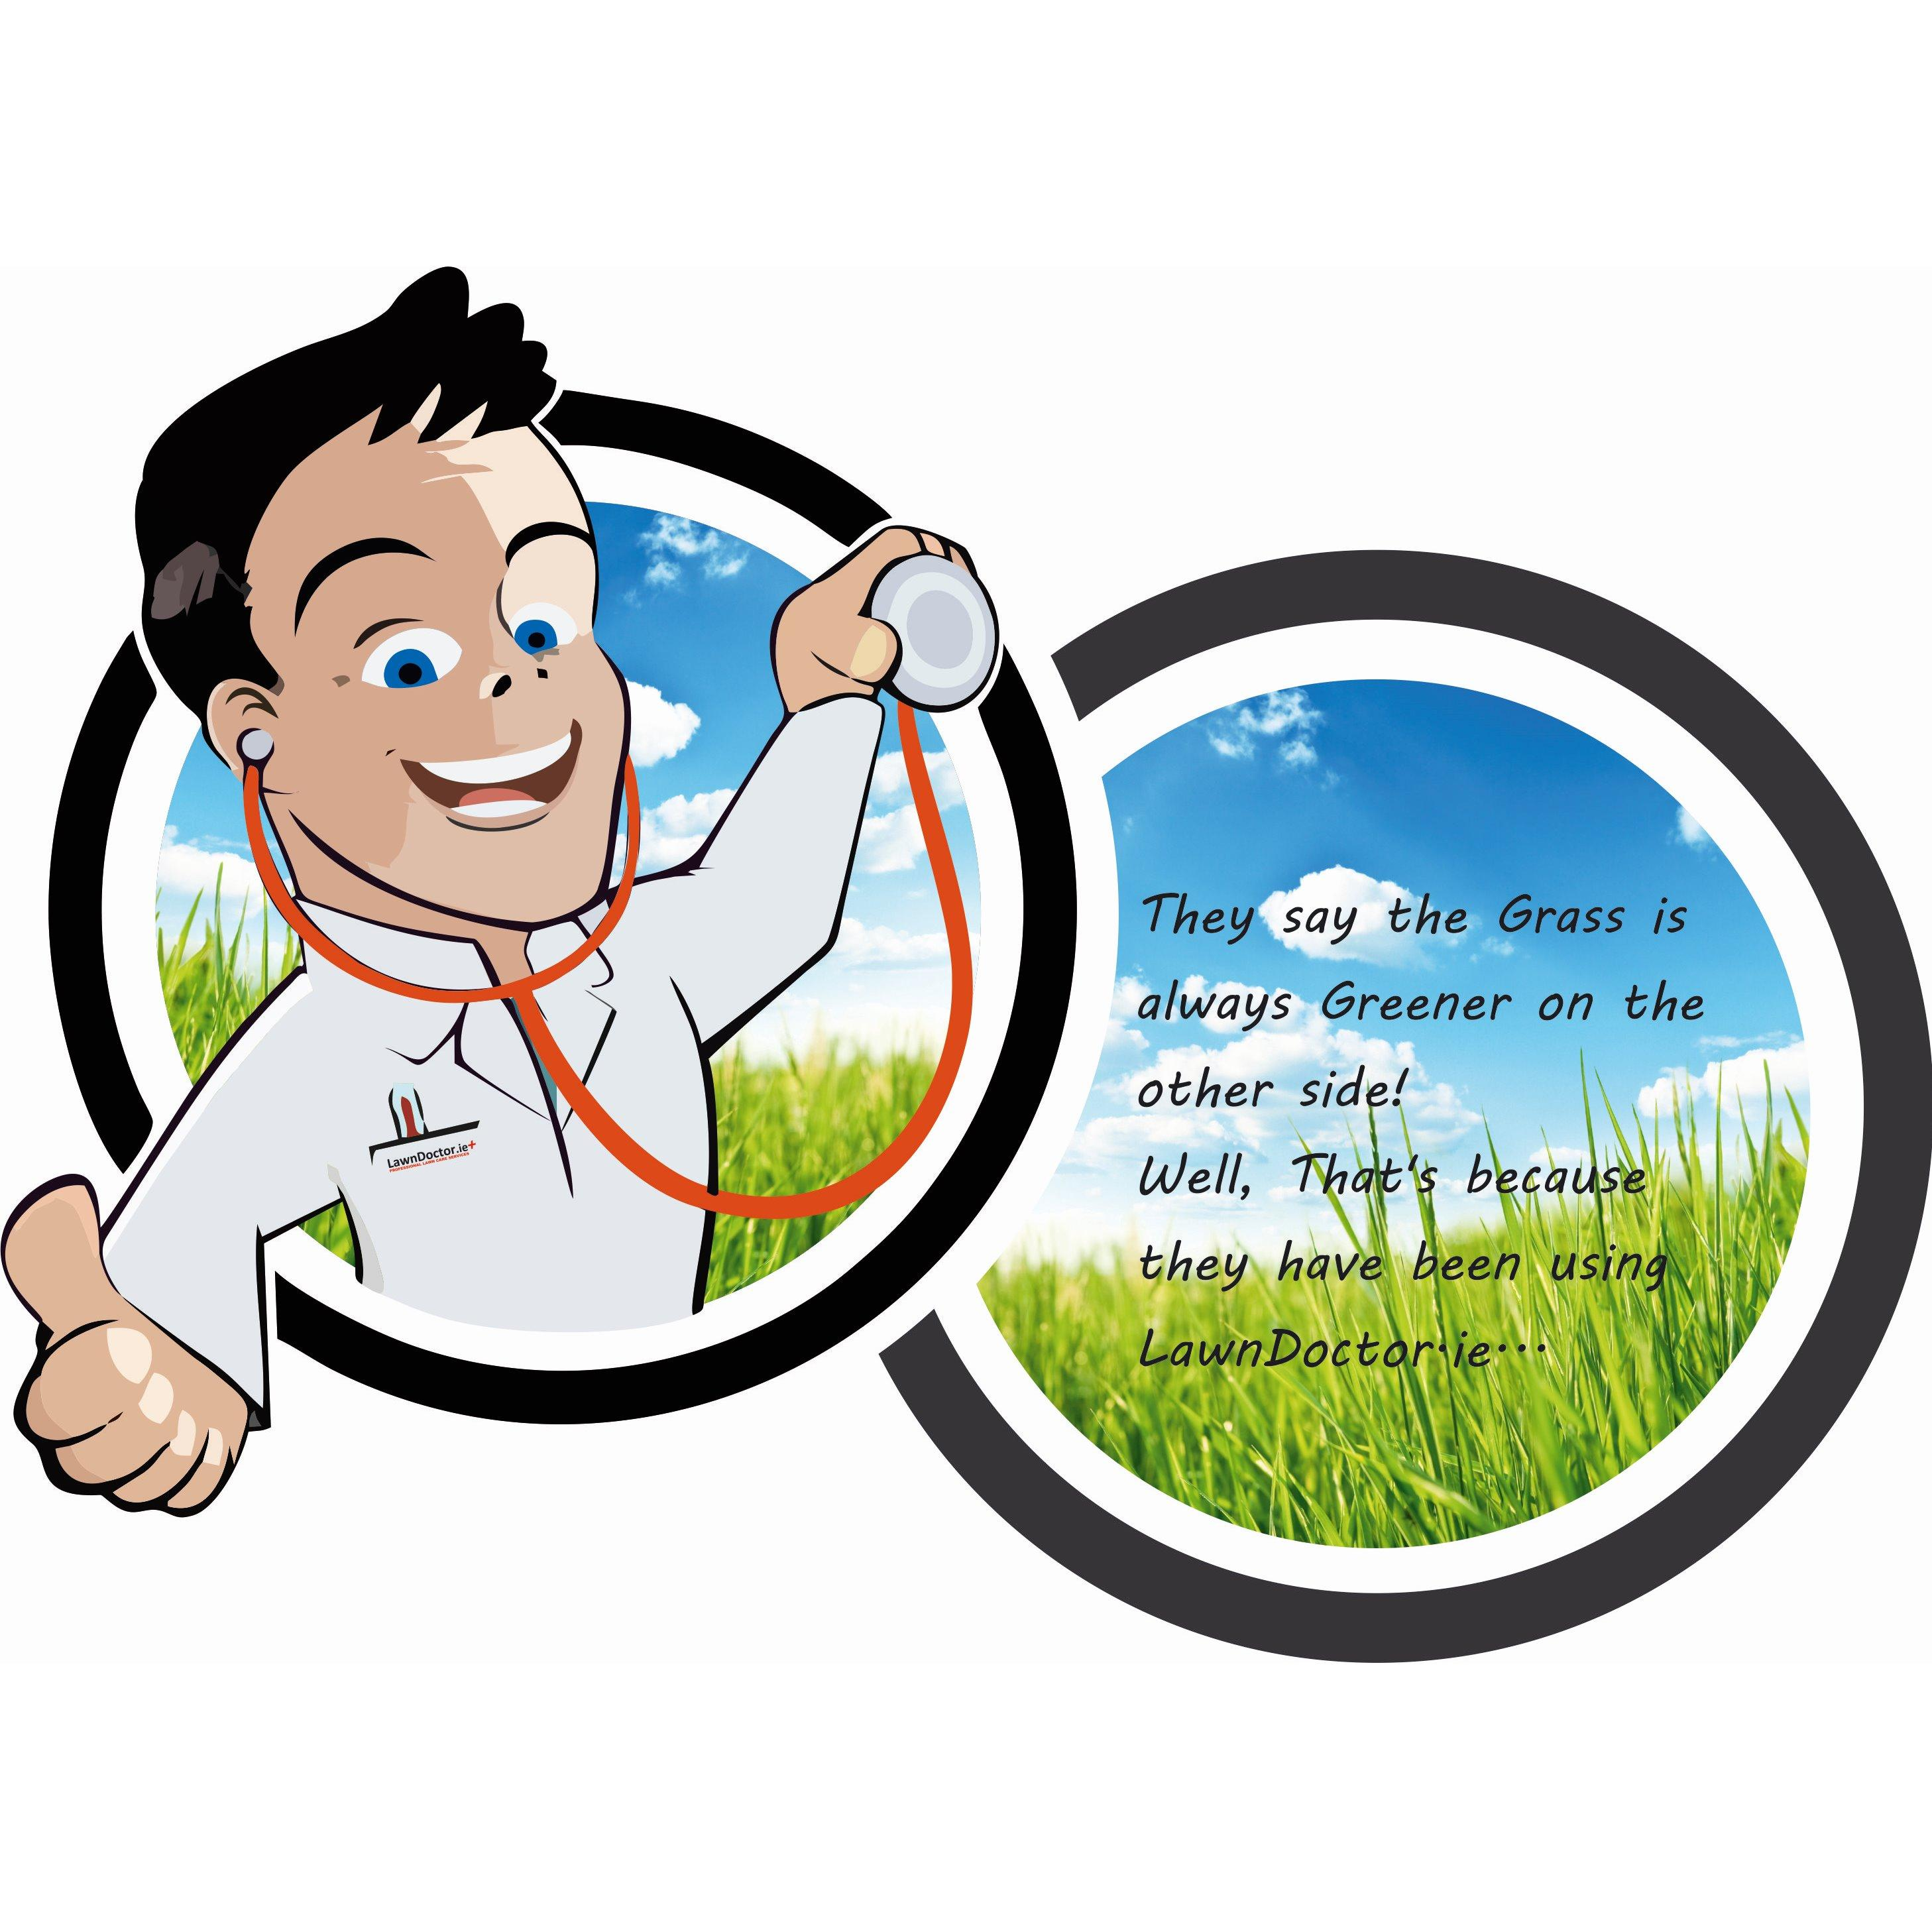 Lawndoctor.ie